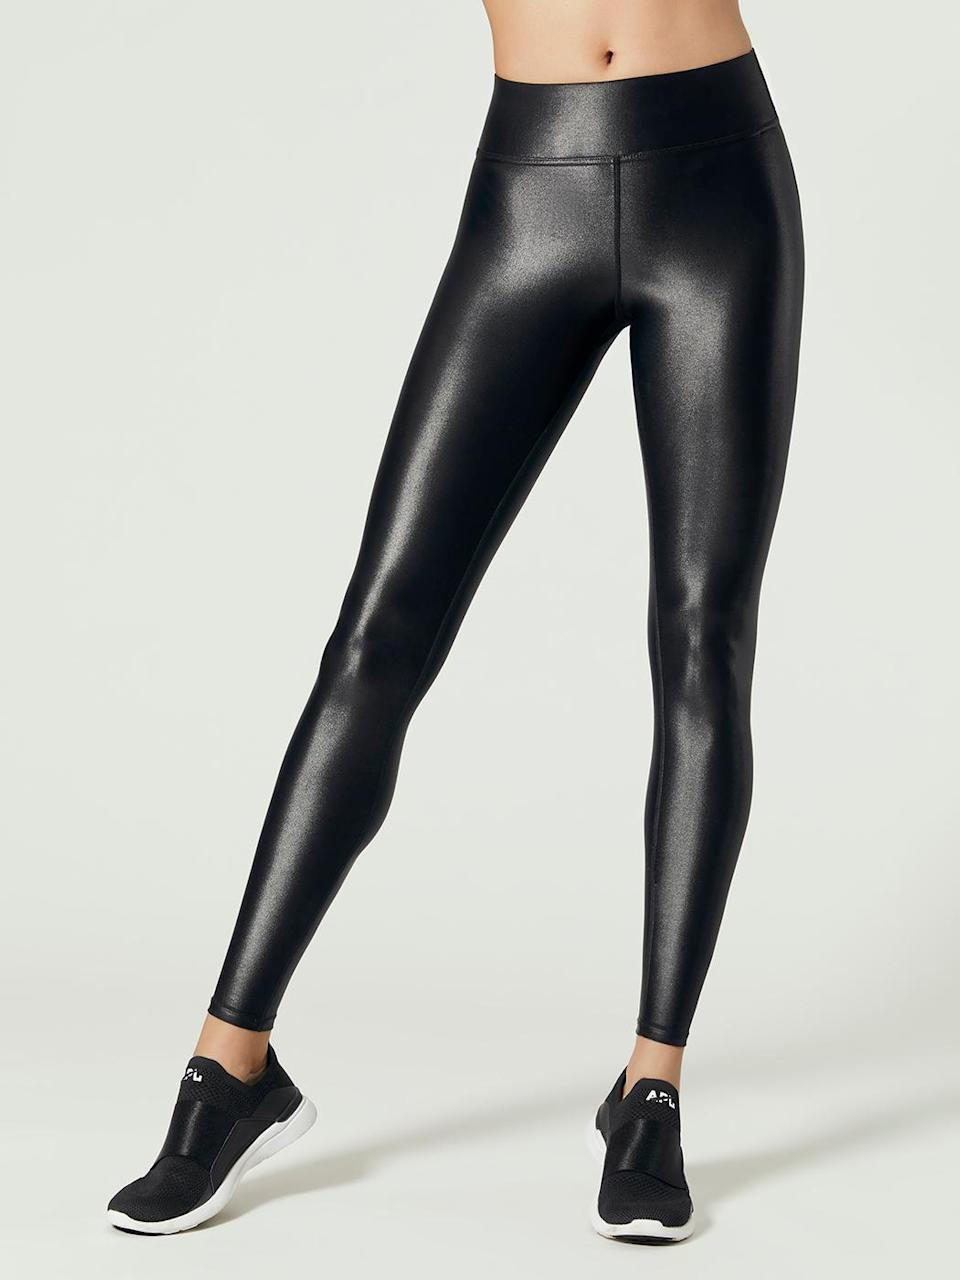 """<strong><h3>Carbon38: The Luxury Legging</h3></strong><br>Who said leggings couldn't be luxurious? The Takara legging comes in a glossy liquid finish for that perfect model-off-duty look.<br><br><strong>The hype:</strong> 4.6 out of 5 stars and 475 reviews on Carbon38<br><br><strong>What they're saying:</strong> """"These leggings are amazing! I am so happy I finally found a style/size that fit amazing (I'm 5'6, 125lb, and the XS fits perfectly). I tried the High-Waist Takara Leggings in two different sizes and the waistband on that style is way too uncomfortable and high, regardless of size. The regular Takara Leggings have a fairly high waistband with a super flattering and comfortable fit anyway, which makes these are the perfect leggings for working out and wearing around town!"""" - Jackie, Carbon38 Review<br><br><strong>Carbon38</strong> Regular Rise Full-Length Takara Shine Legging, $, available at <a href=""""https://go.skimresources.com/?id=30283X879131&url=https%3A%2F%2Fwww.carbon38.com%2Fproduct%2Ftakara-leggings"""" rel=""""nofollow noopener"""" target=""""_blank"""" data-ylk=""""slk:Carbon38"""" class=""""link rapid-noclick-resp"""">Carbon38</a>"""